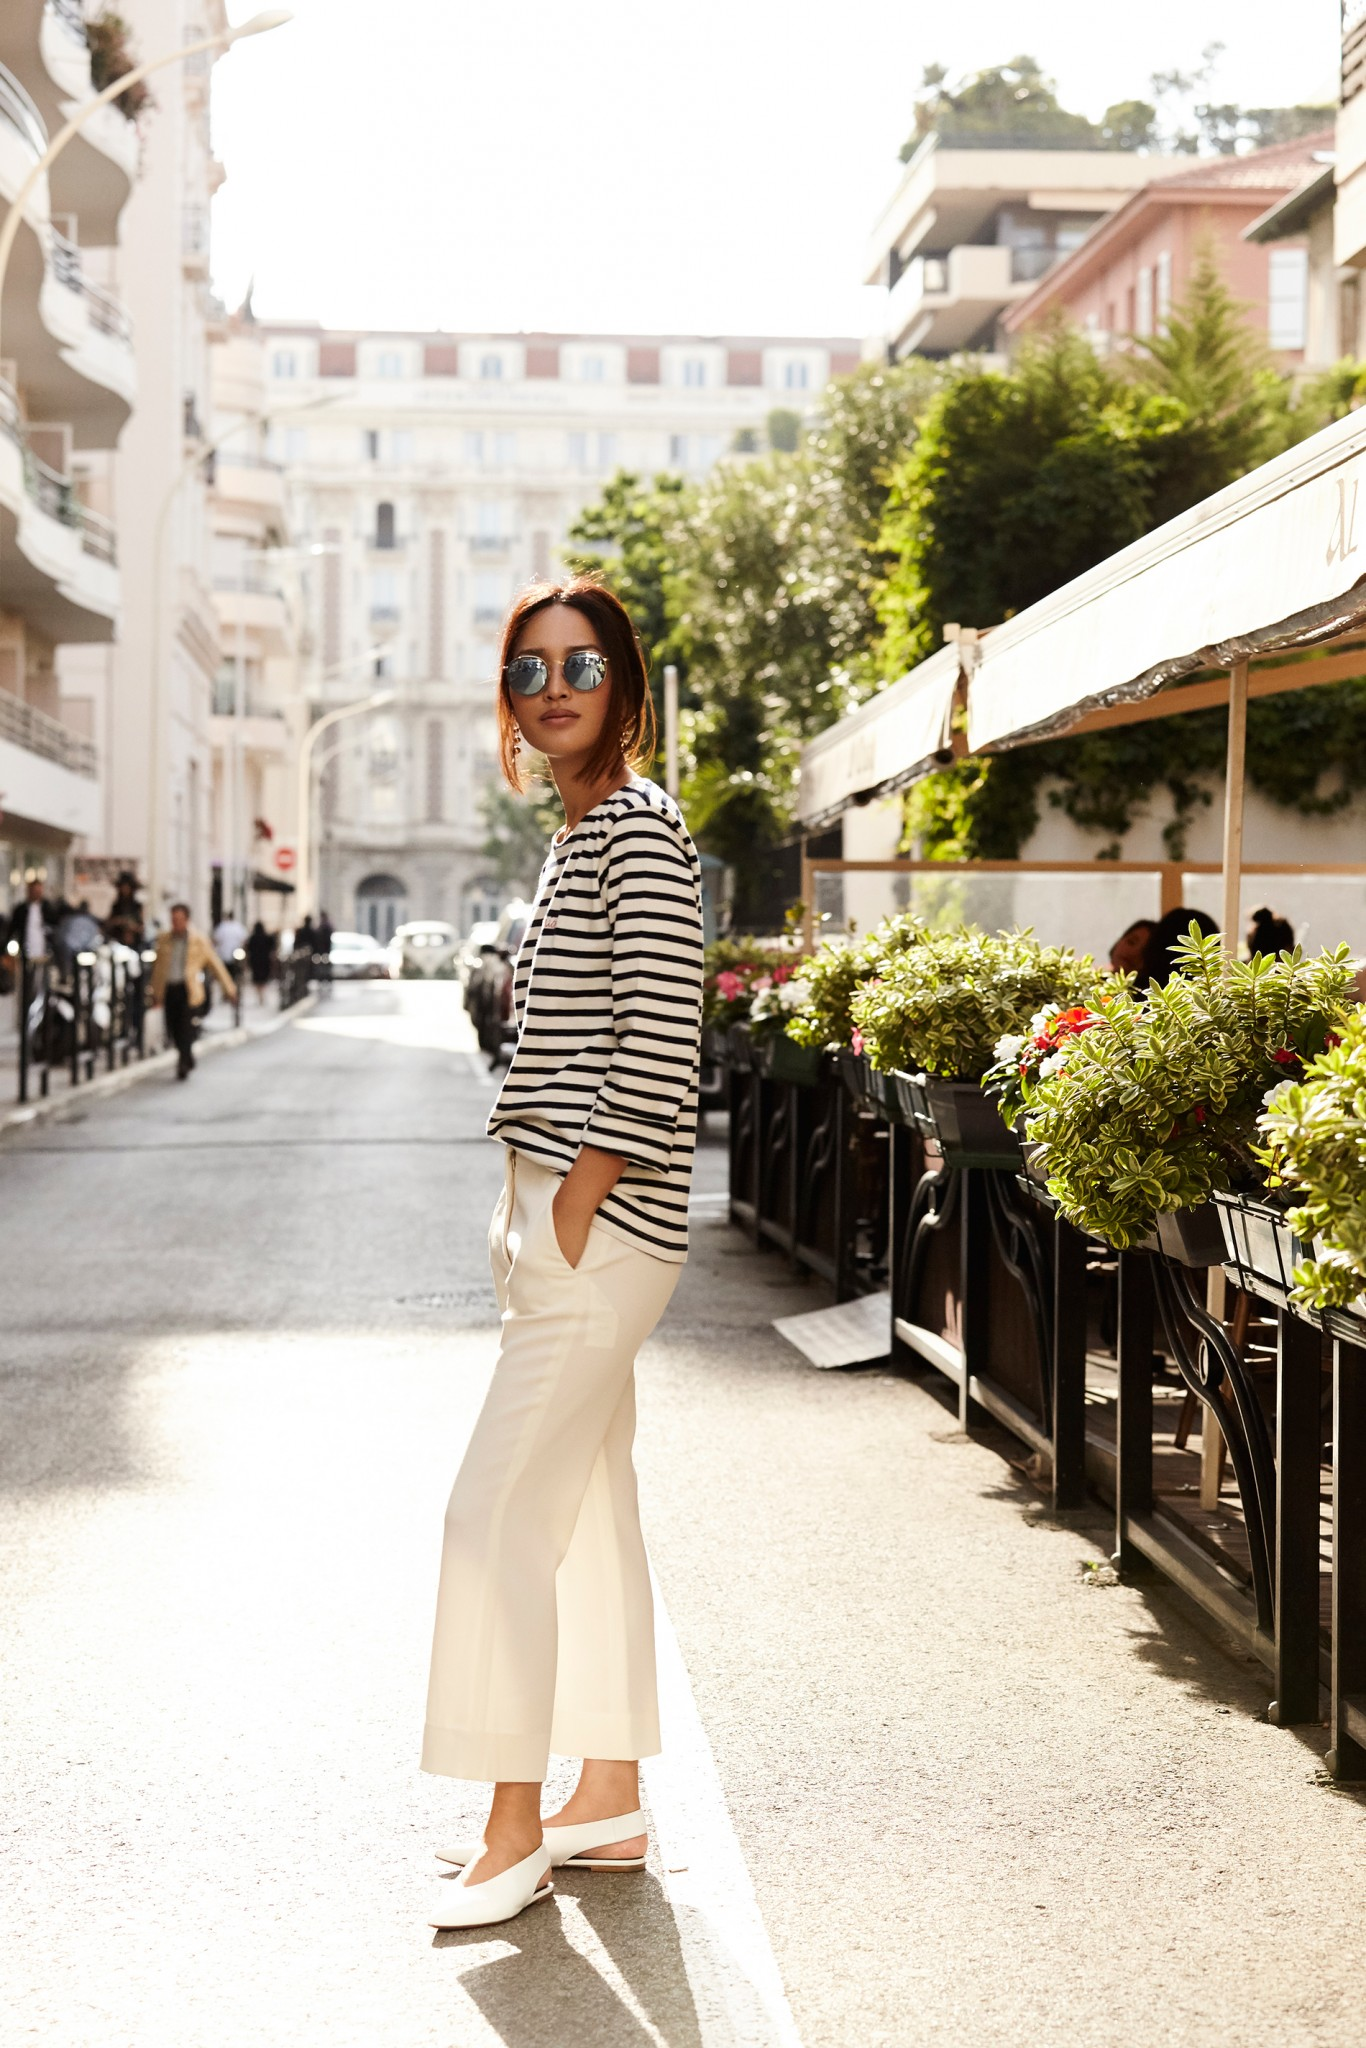 Nicole Warne has created a gorgeous summer outfit here.COnsisting of a sailor style striped tee, crisp white culottes, and a pair of white sandals which perfectly contrast a summer tan, this look is ready to go! Tee: Chopard, Trousers: Stella McCartney, Shoes: Celine.